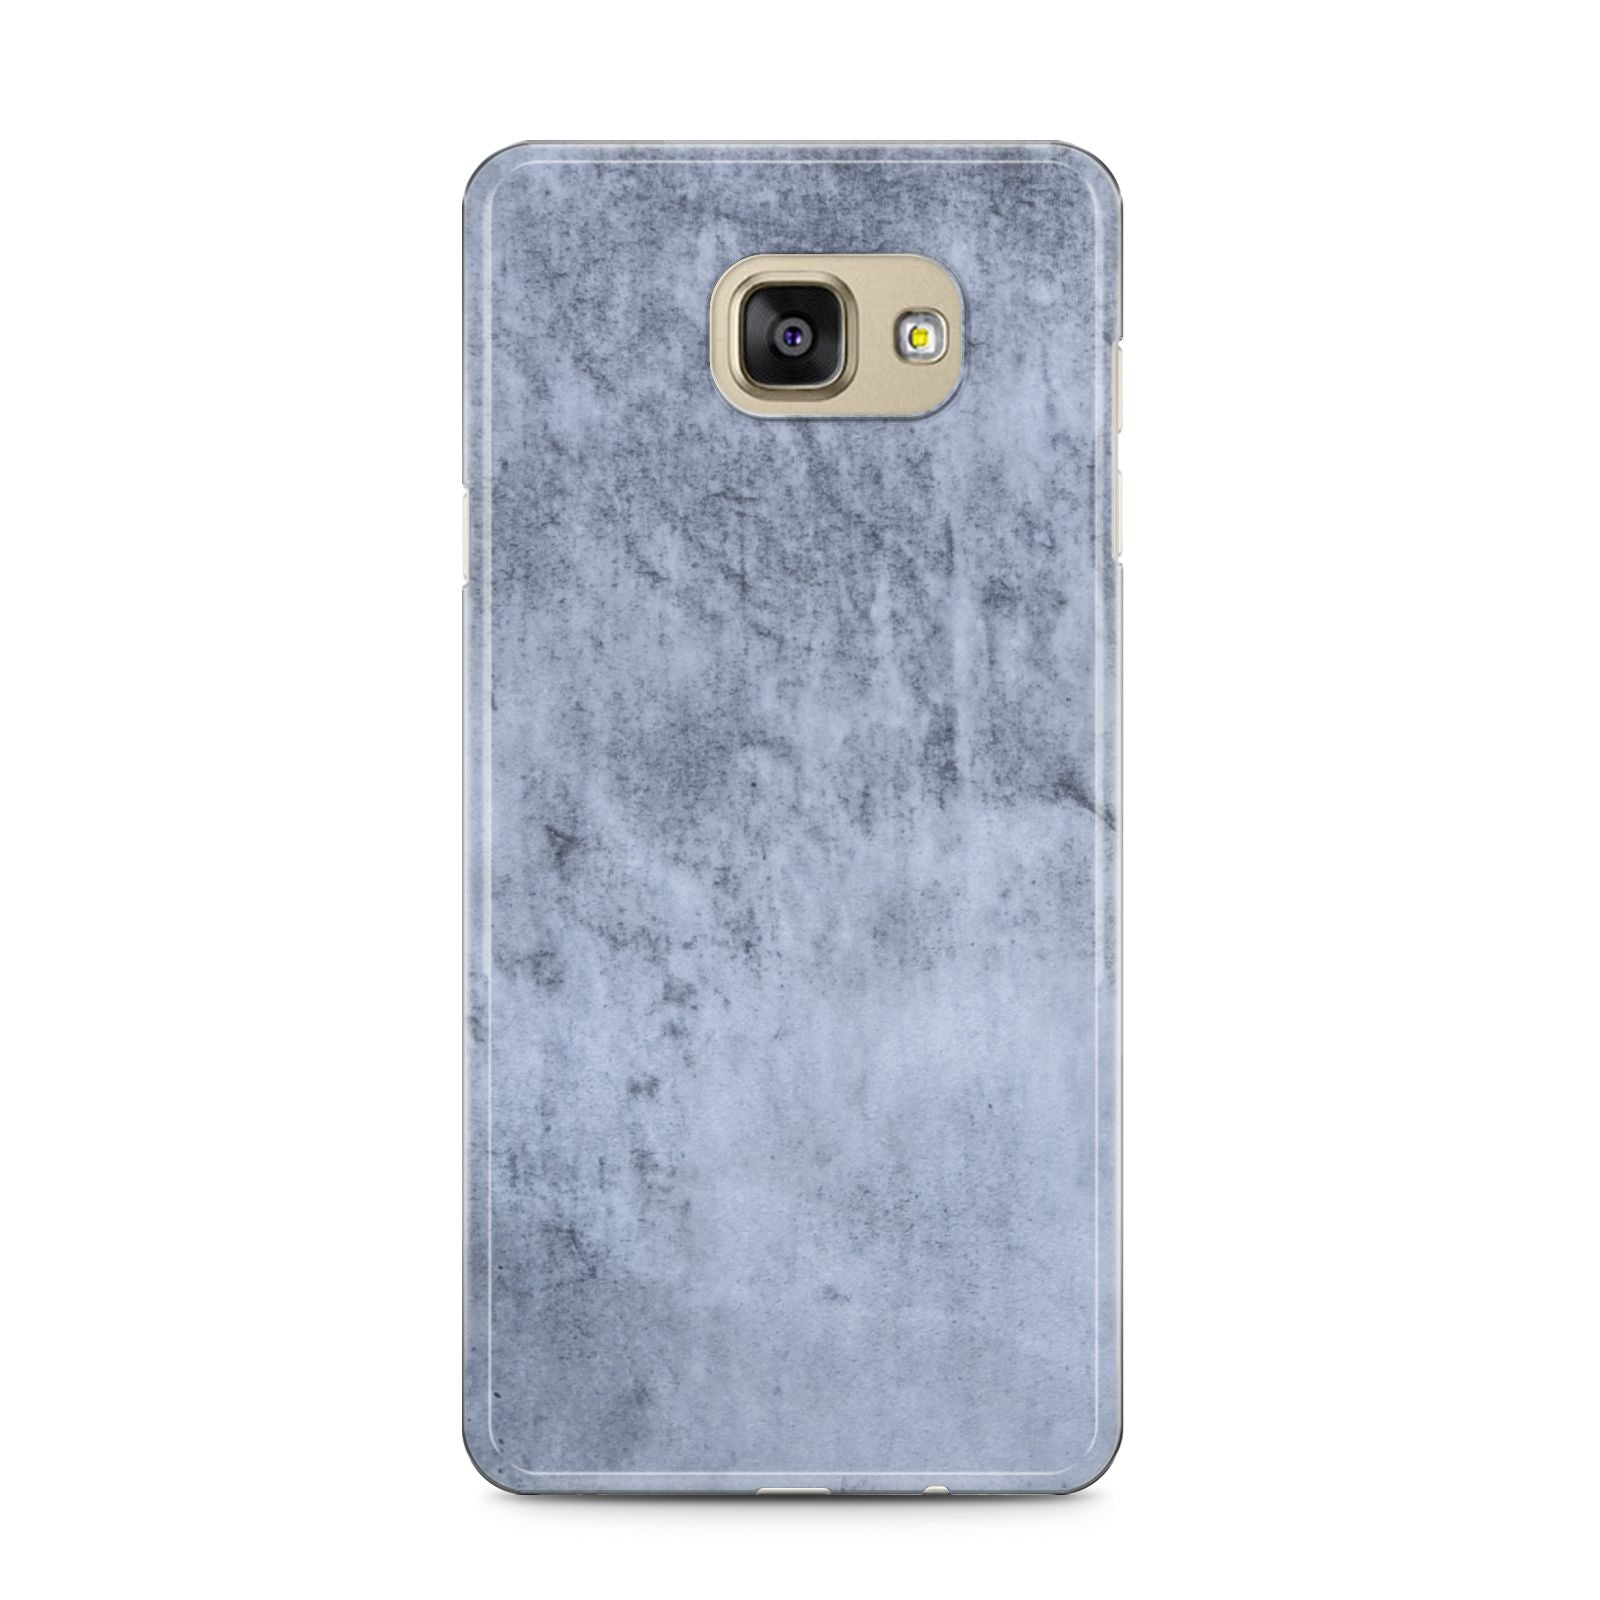 Faux Marble Dark Grey Samsung Galaxy A5 2016 Case on gold phone